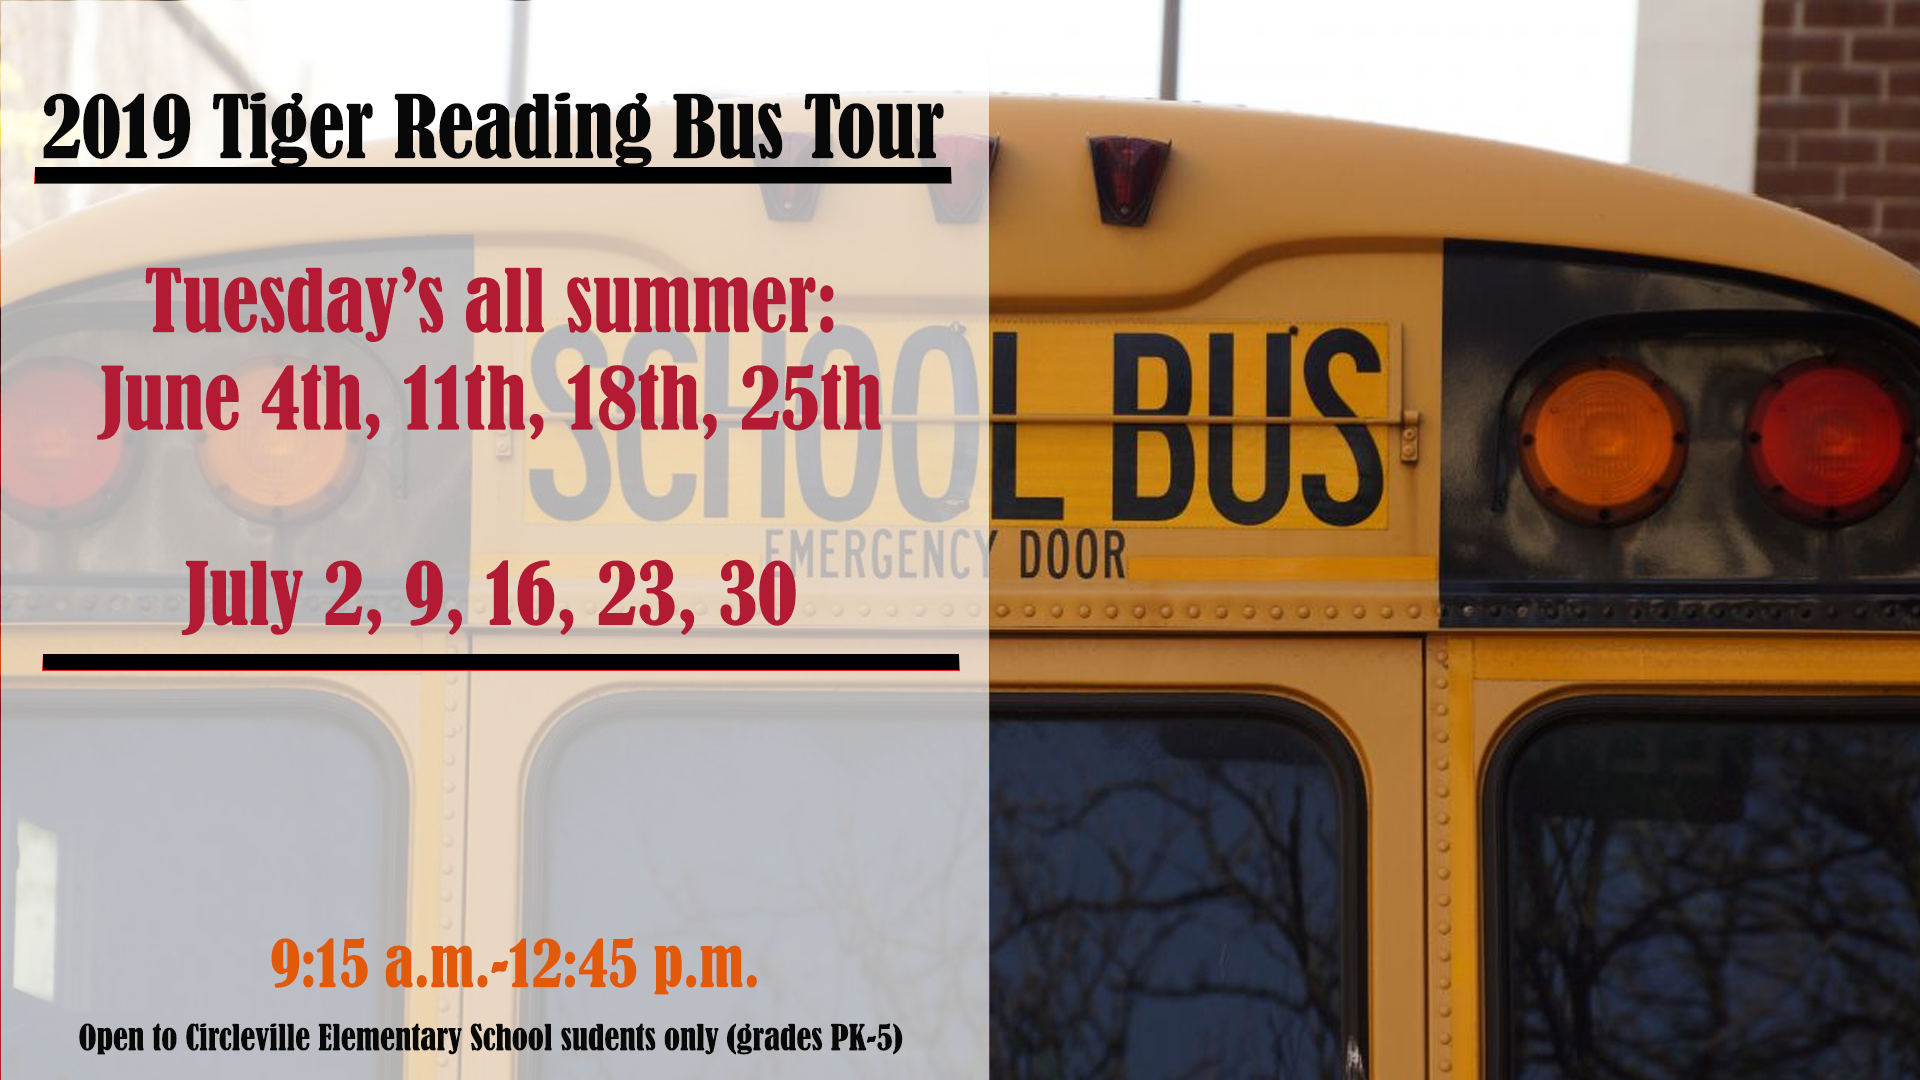 Summer reading bus schedule.